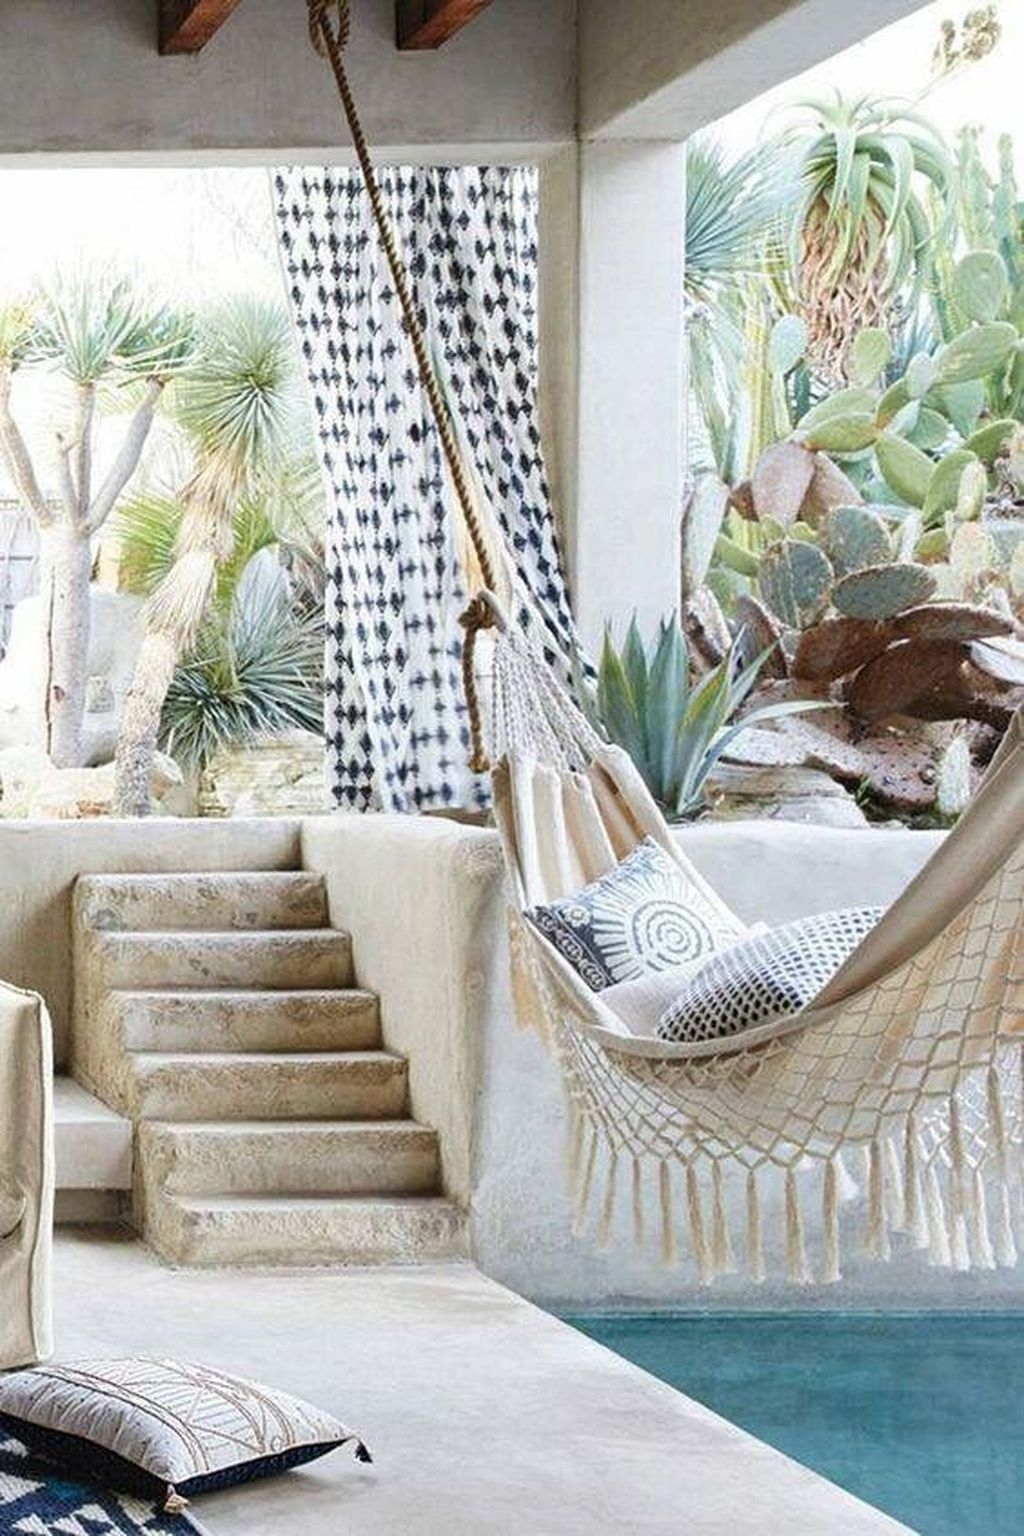 Refined Boho Chic Bedroom Design Ideas16